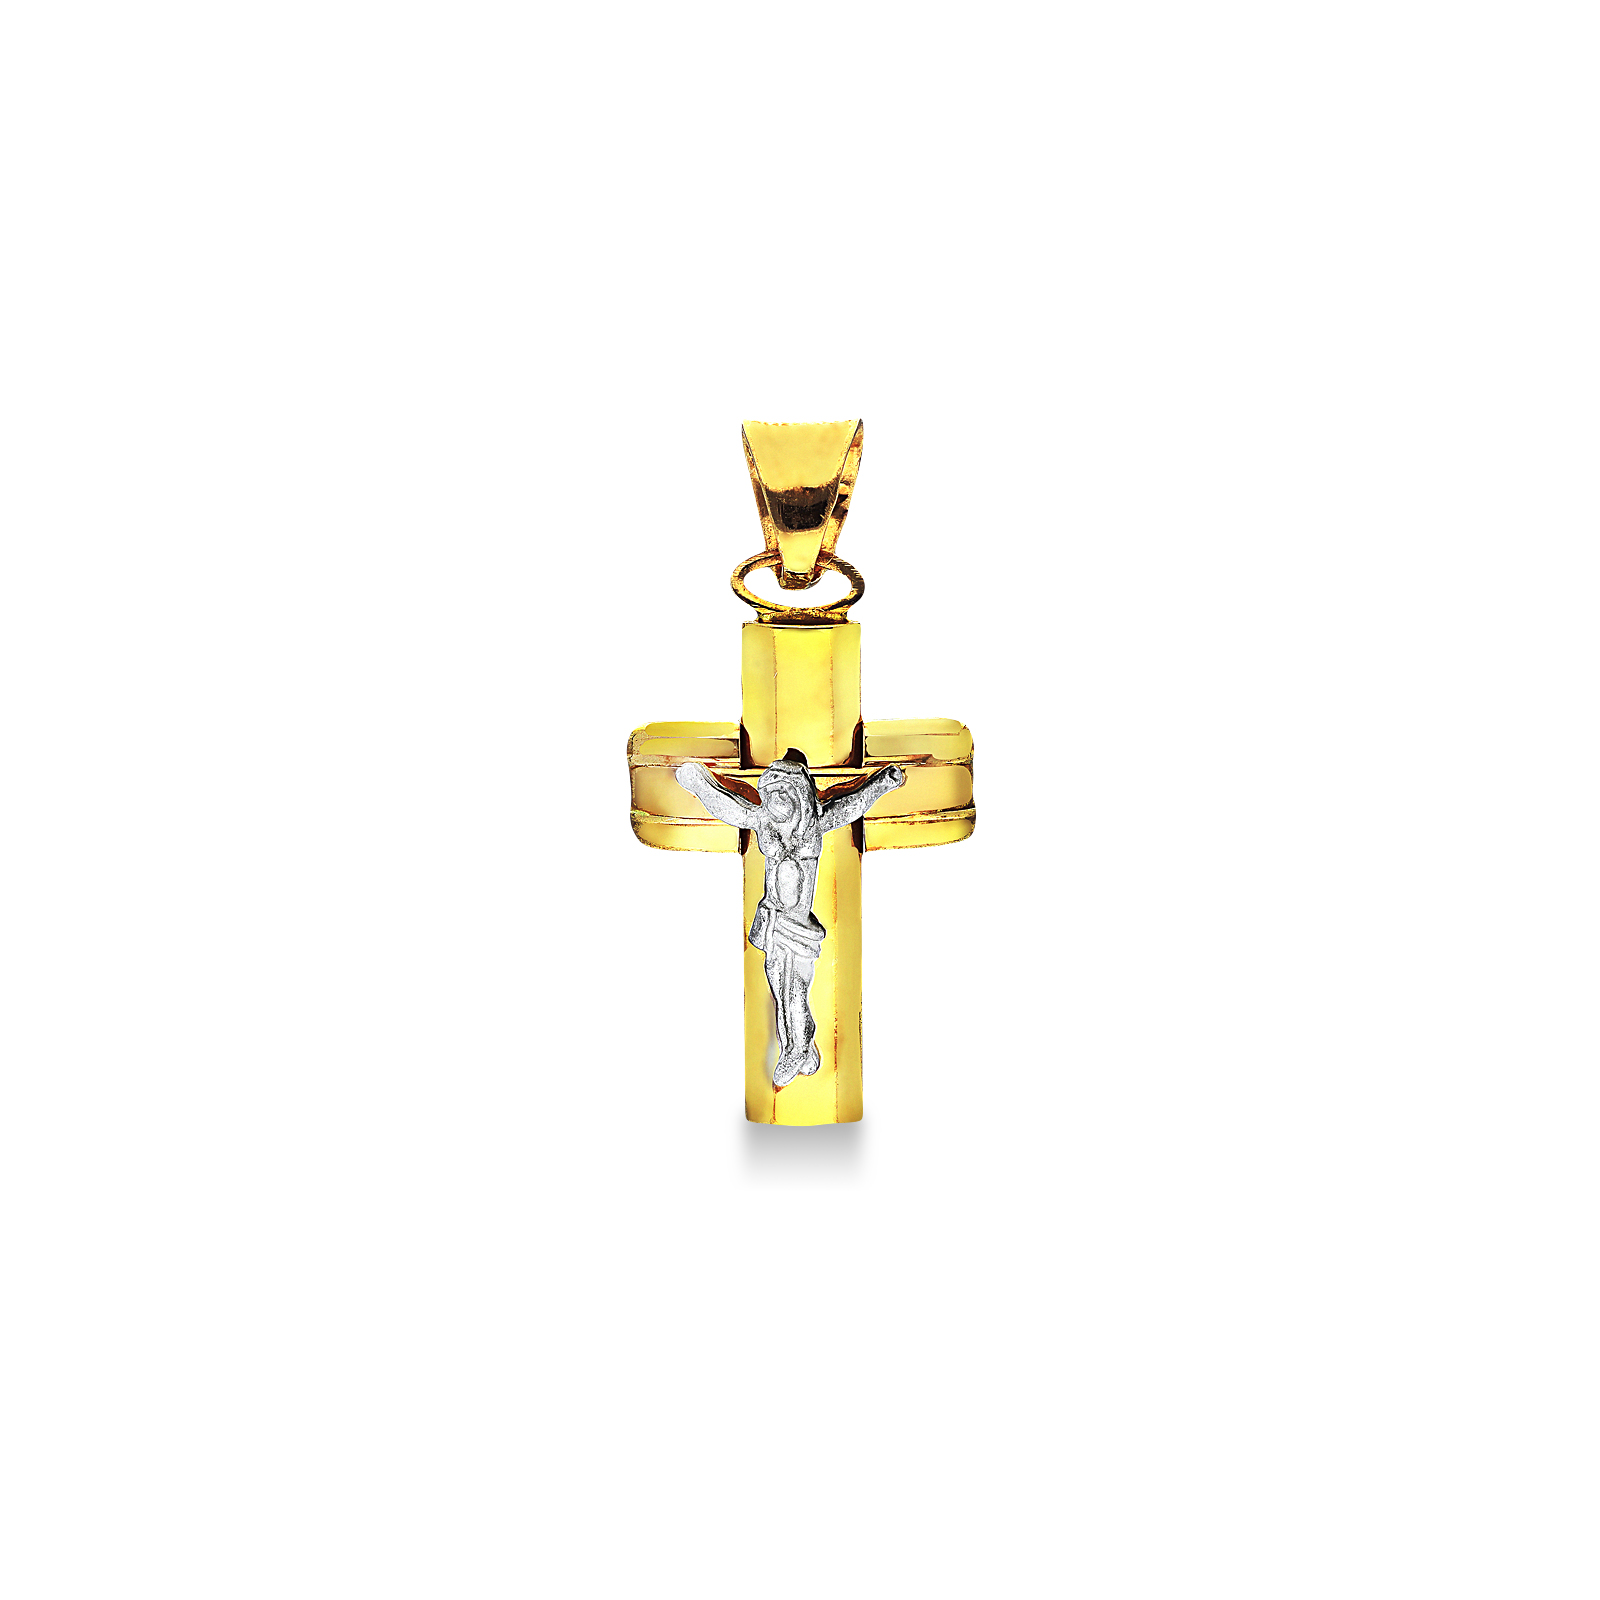 Pendant 18k Gold, White Gold with crucifix